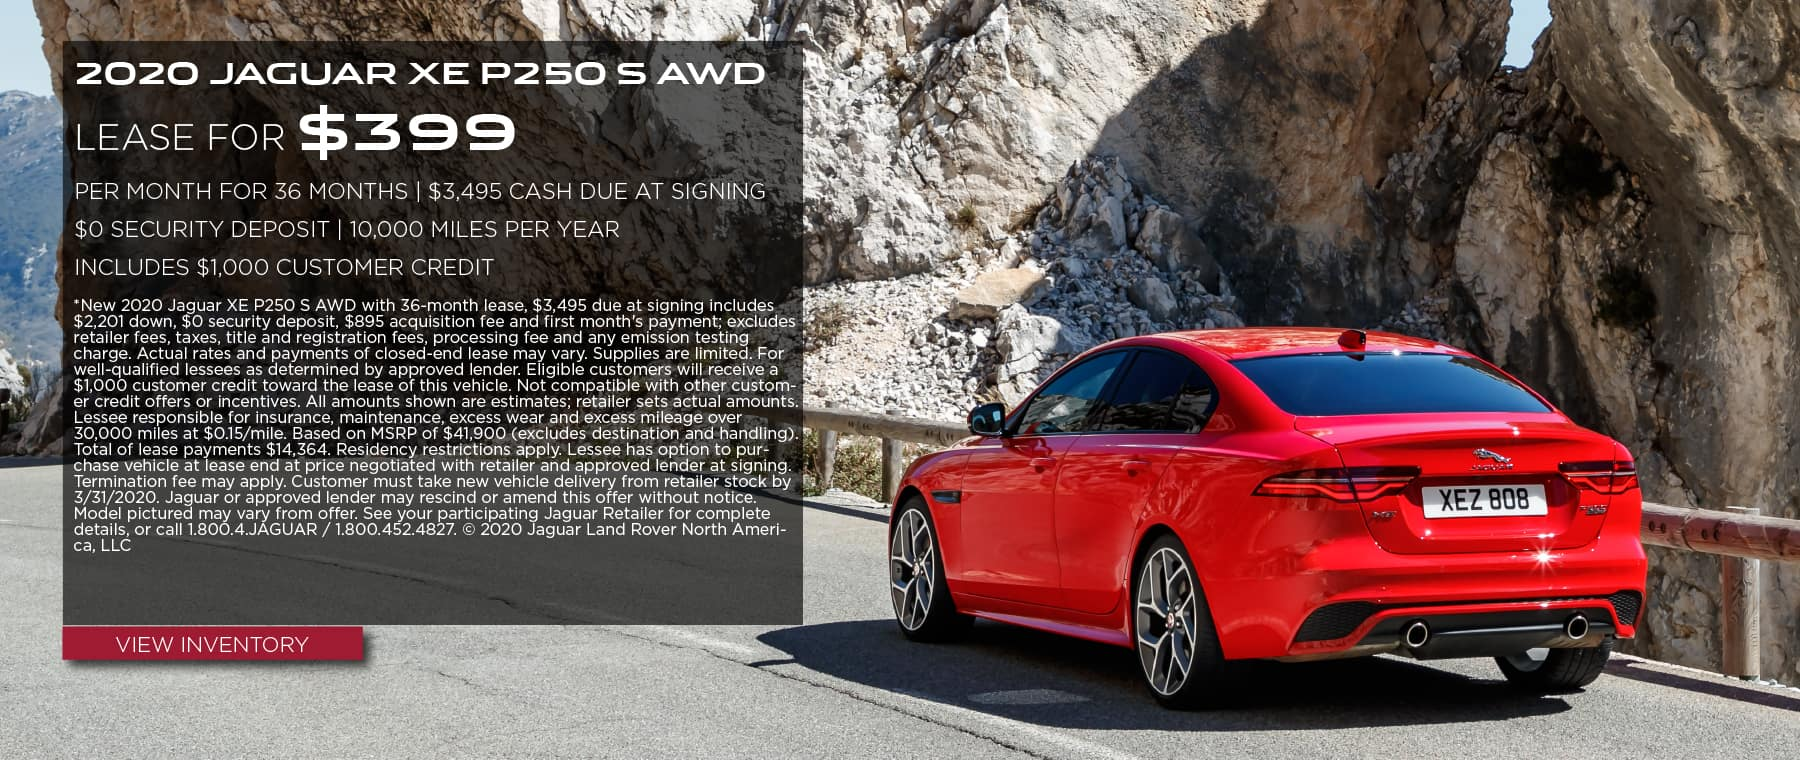 2020 JAGUAR XE P250 S AWD. $399 PER MONTH. 36 MONTH LEASE TERM. $3,495 CASH DUE AT SIGNING. INCLUDES $1,000 CUSTOMER CREDIT. $0 SECURITY DEPOSIT. 10,000 MILES PER YEAR. OFFER ENDS 3/31/2020. RED JAGUAR XE DRIVING DOWN ROAD THROUGH MOUNTAIN RANGE.